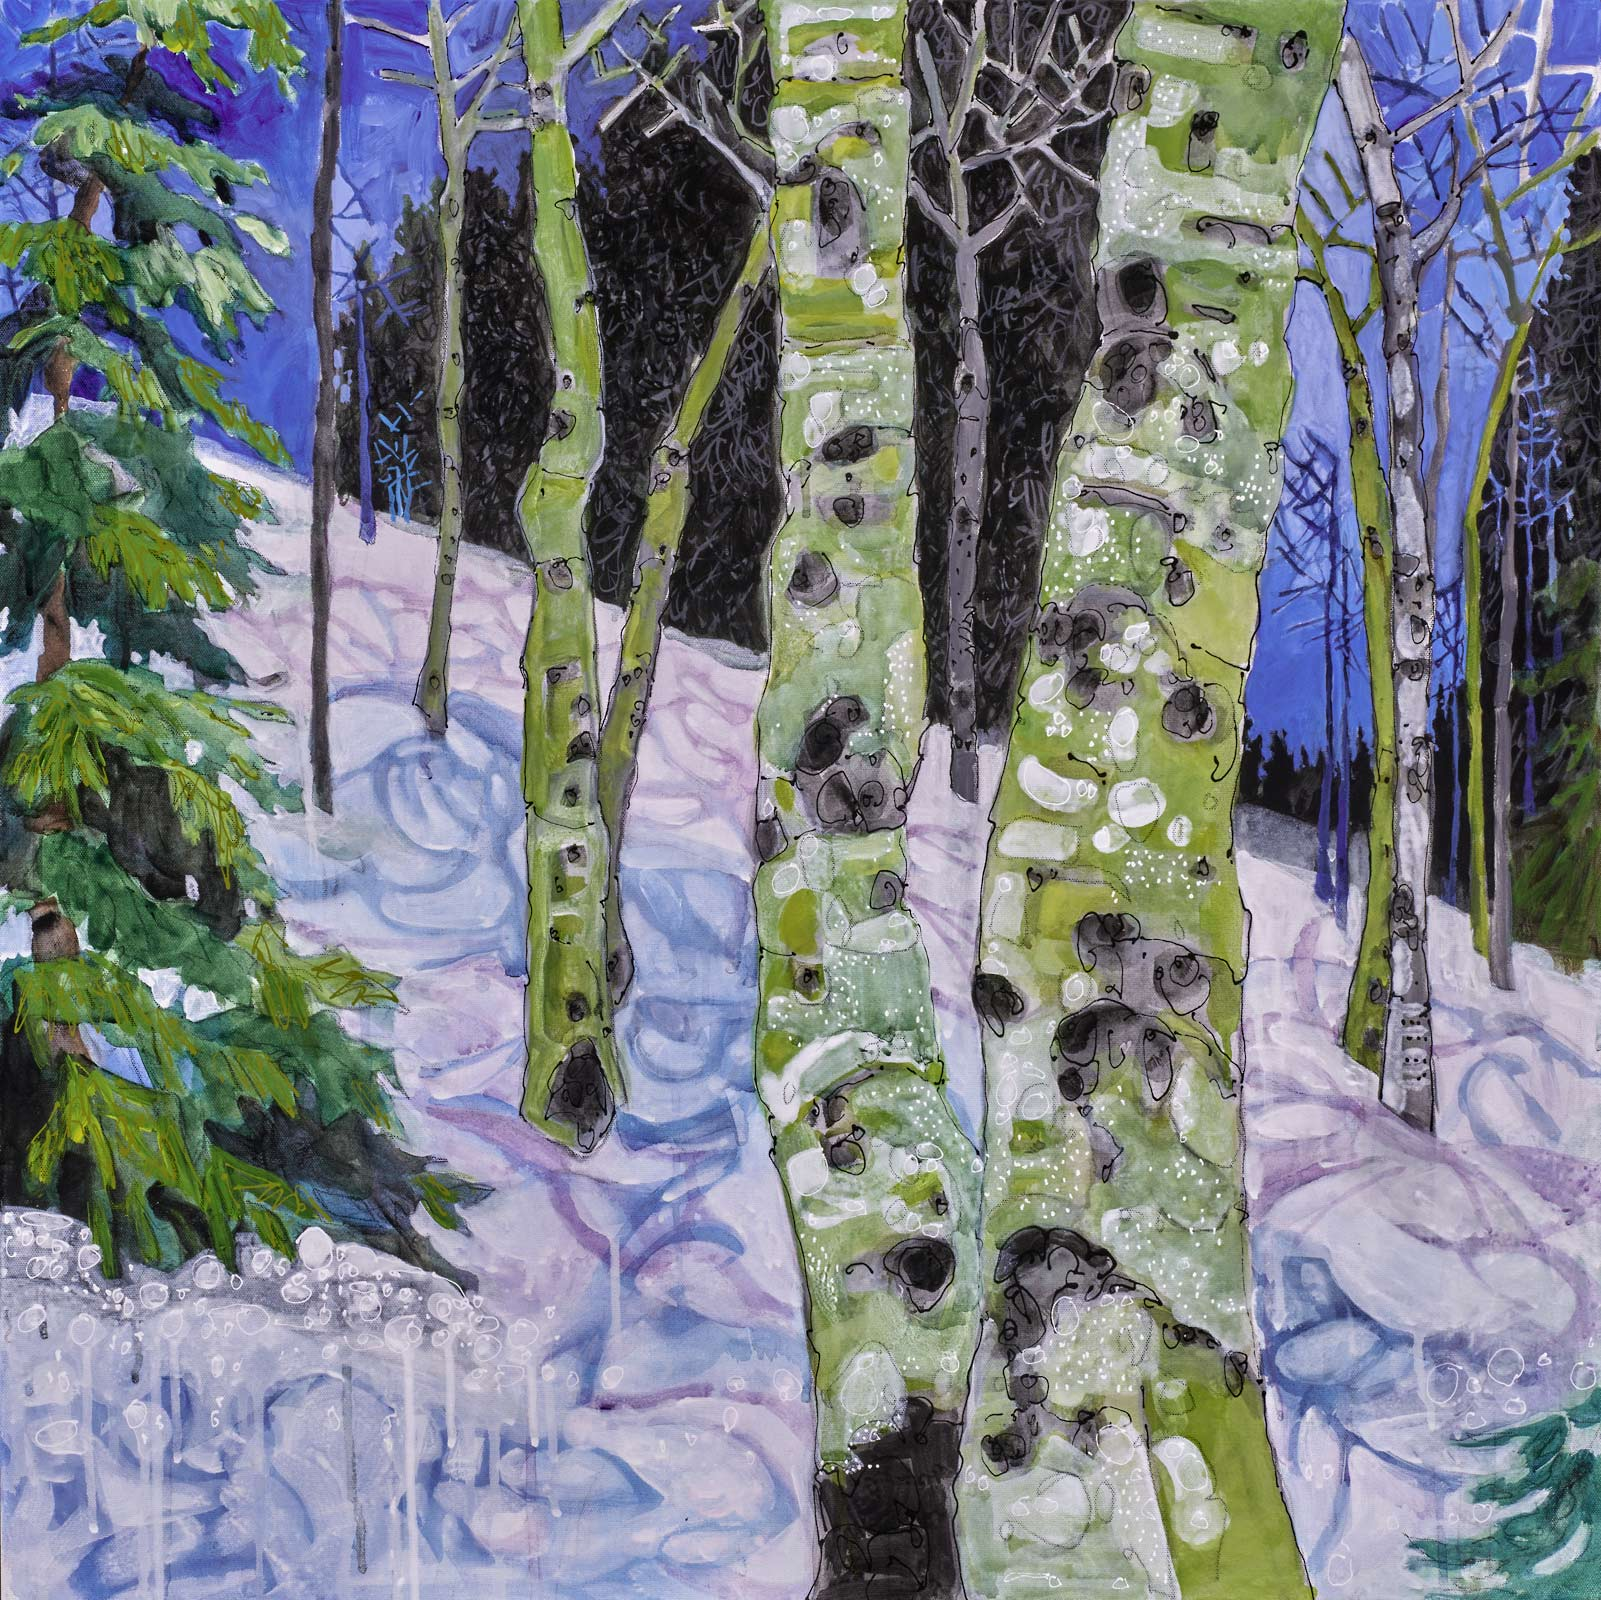 Winter Aspens 30x30. contemporary landscape painting by Lance Whitner hanging in Pine Moon Fine Art.